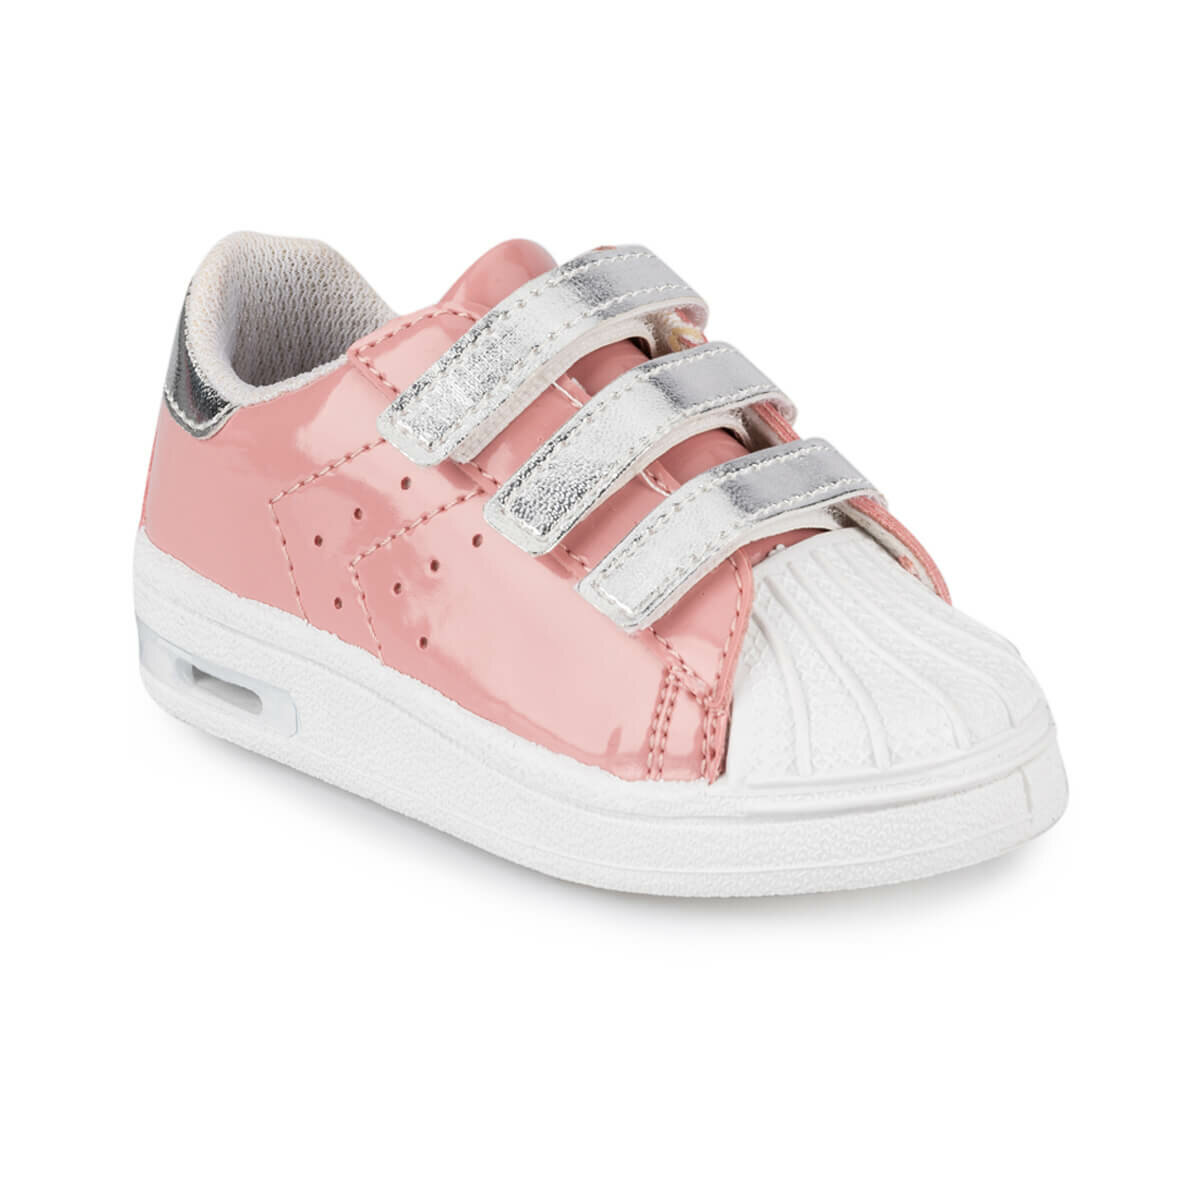 FLO MONTY S 9PR Pink Female Child Sneaker Shoes KINETIX